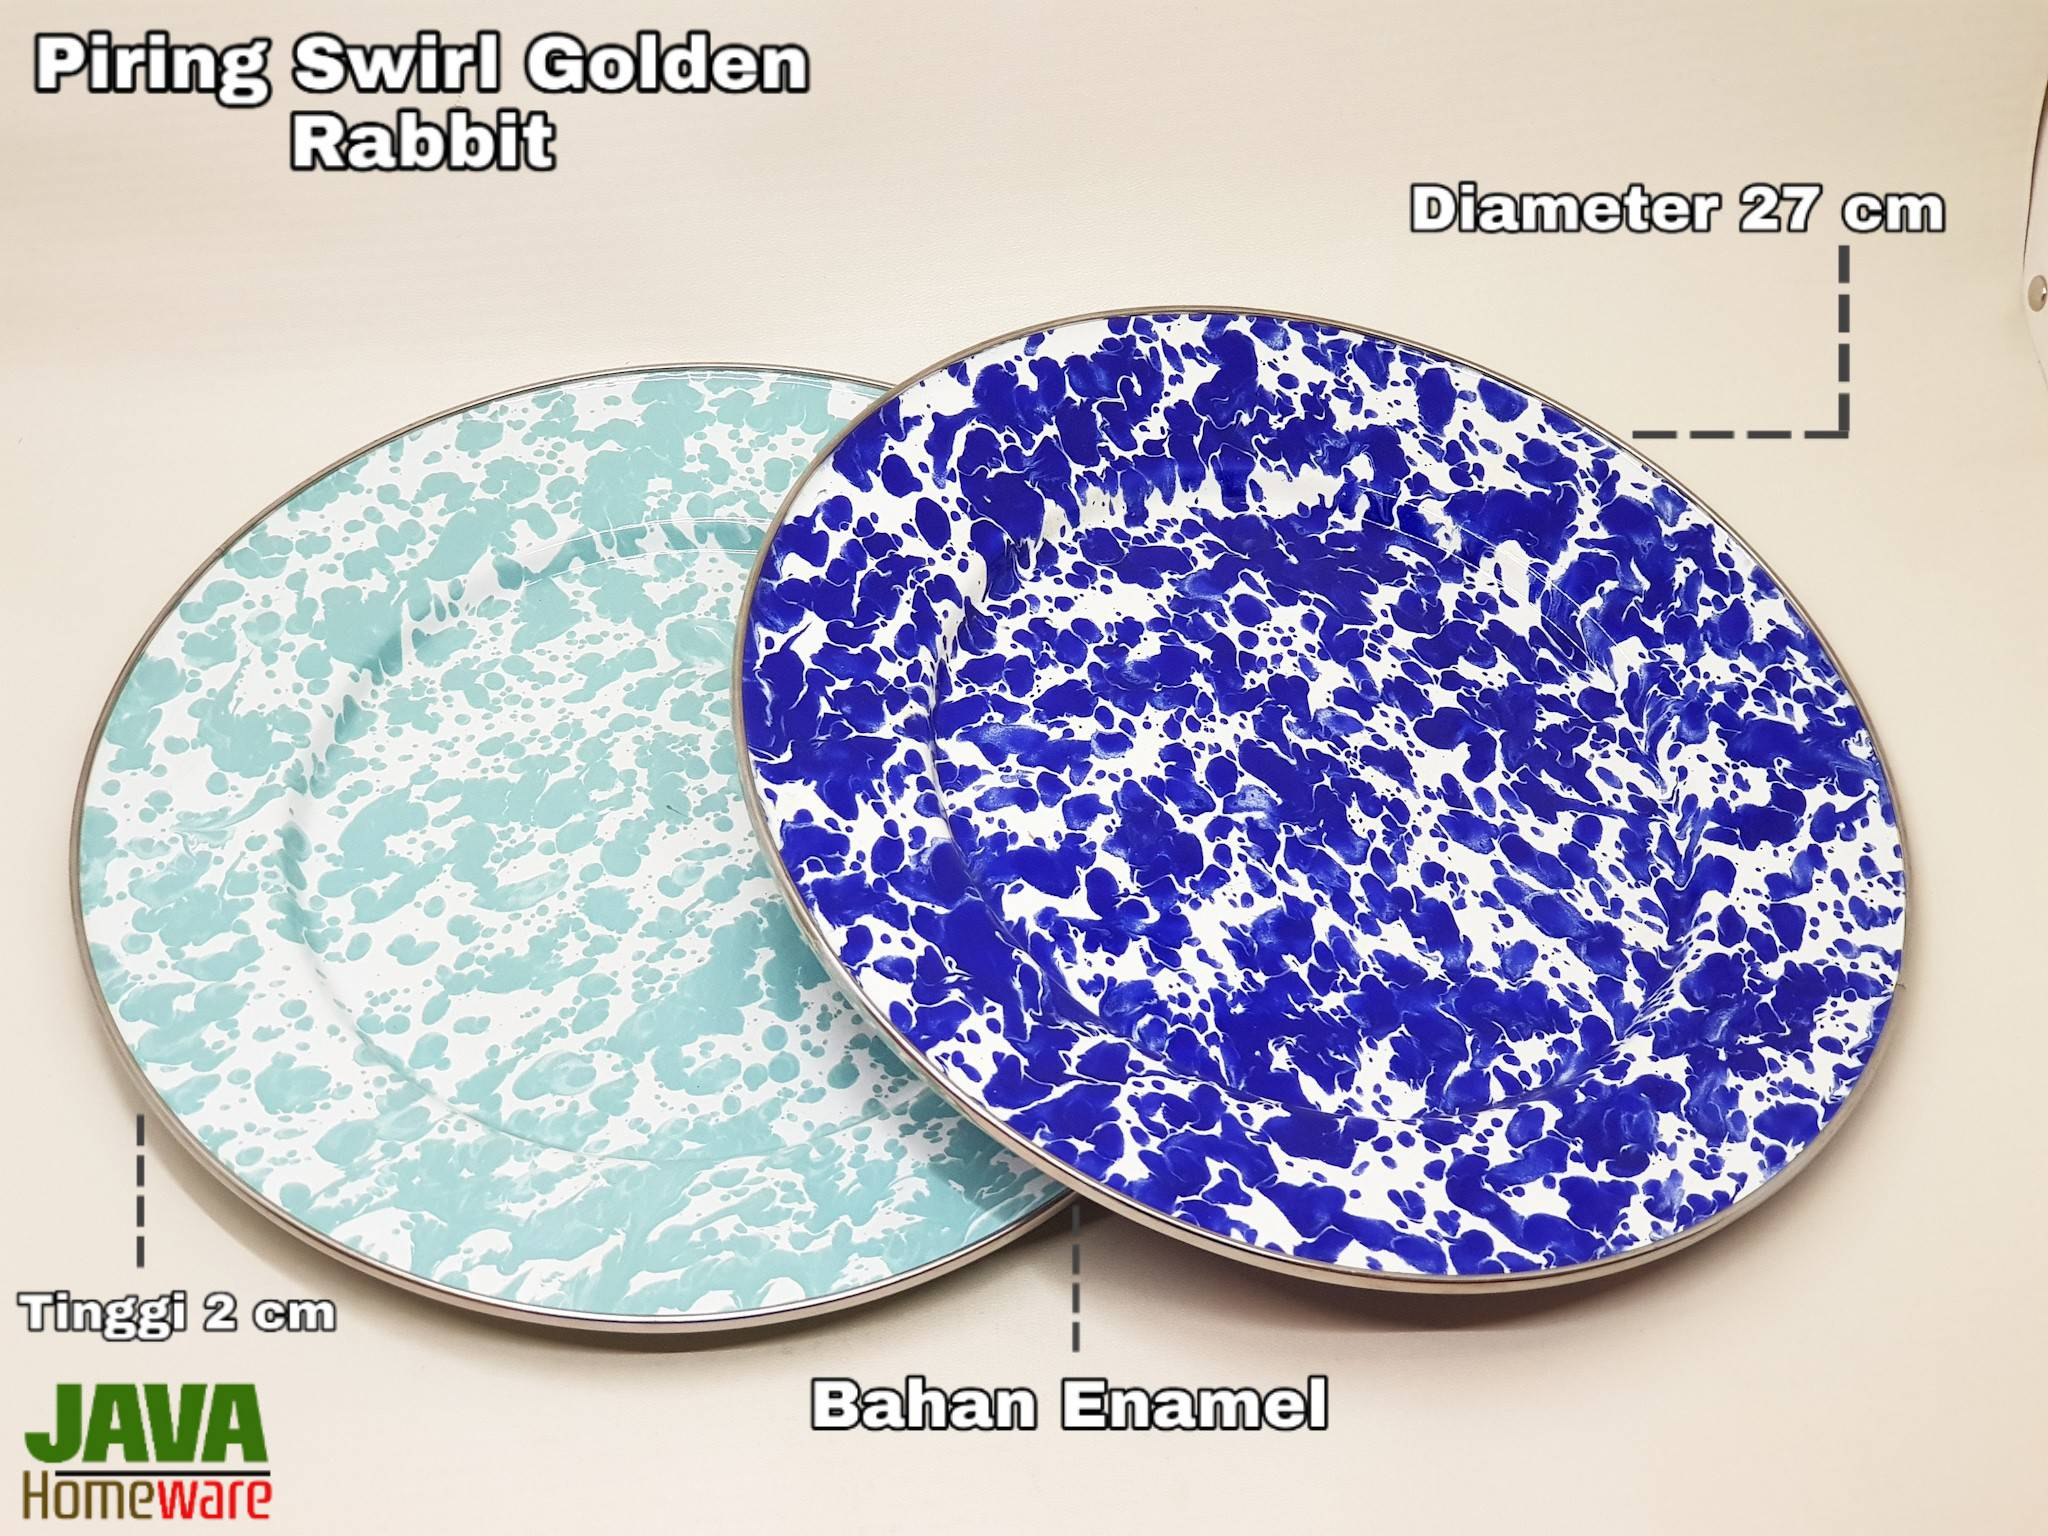 Piring Biru Muda Swirl Golden Rabbit